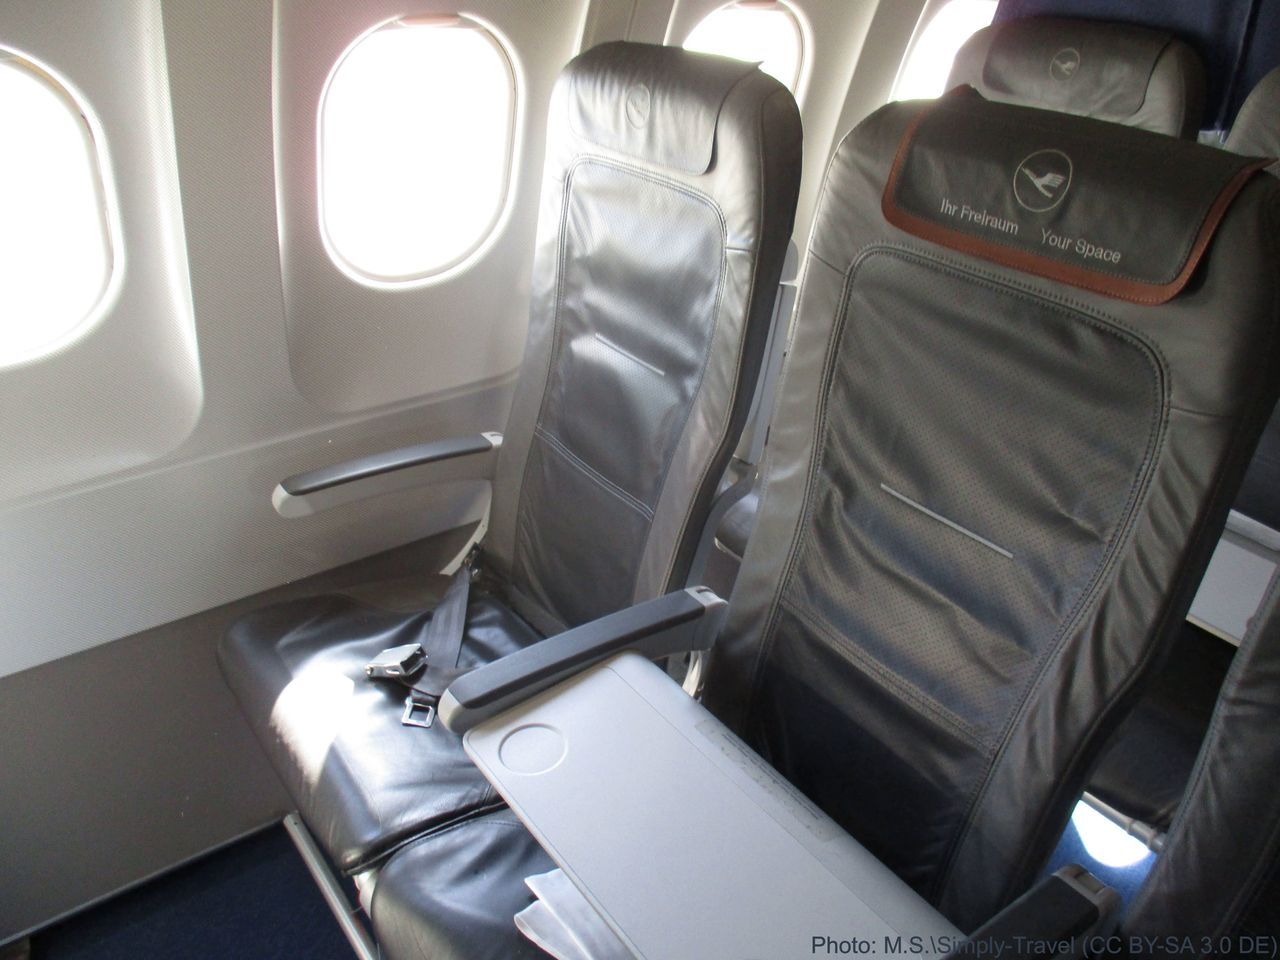 Review Of Lufthansa Flight From Barcelona To Munich In